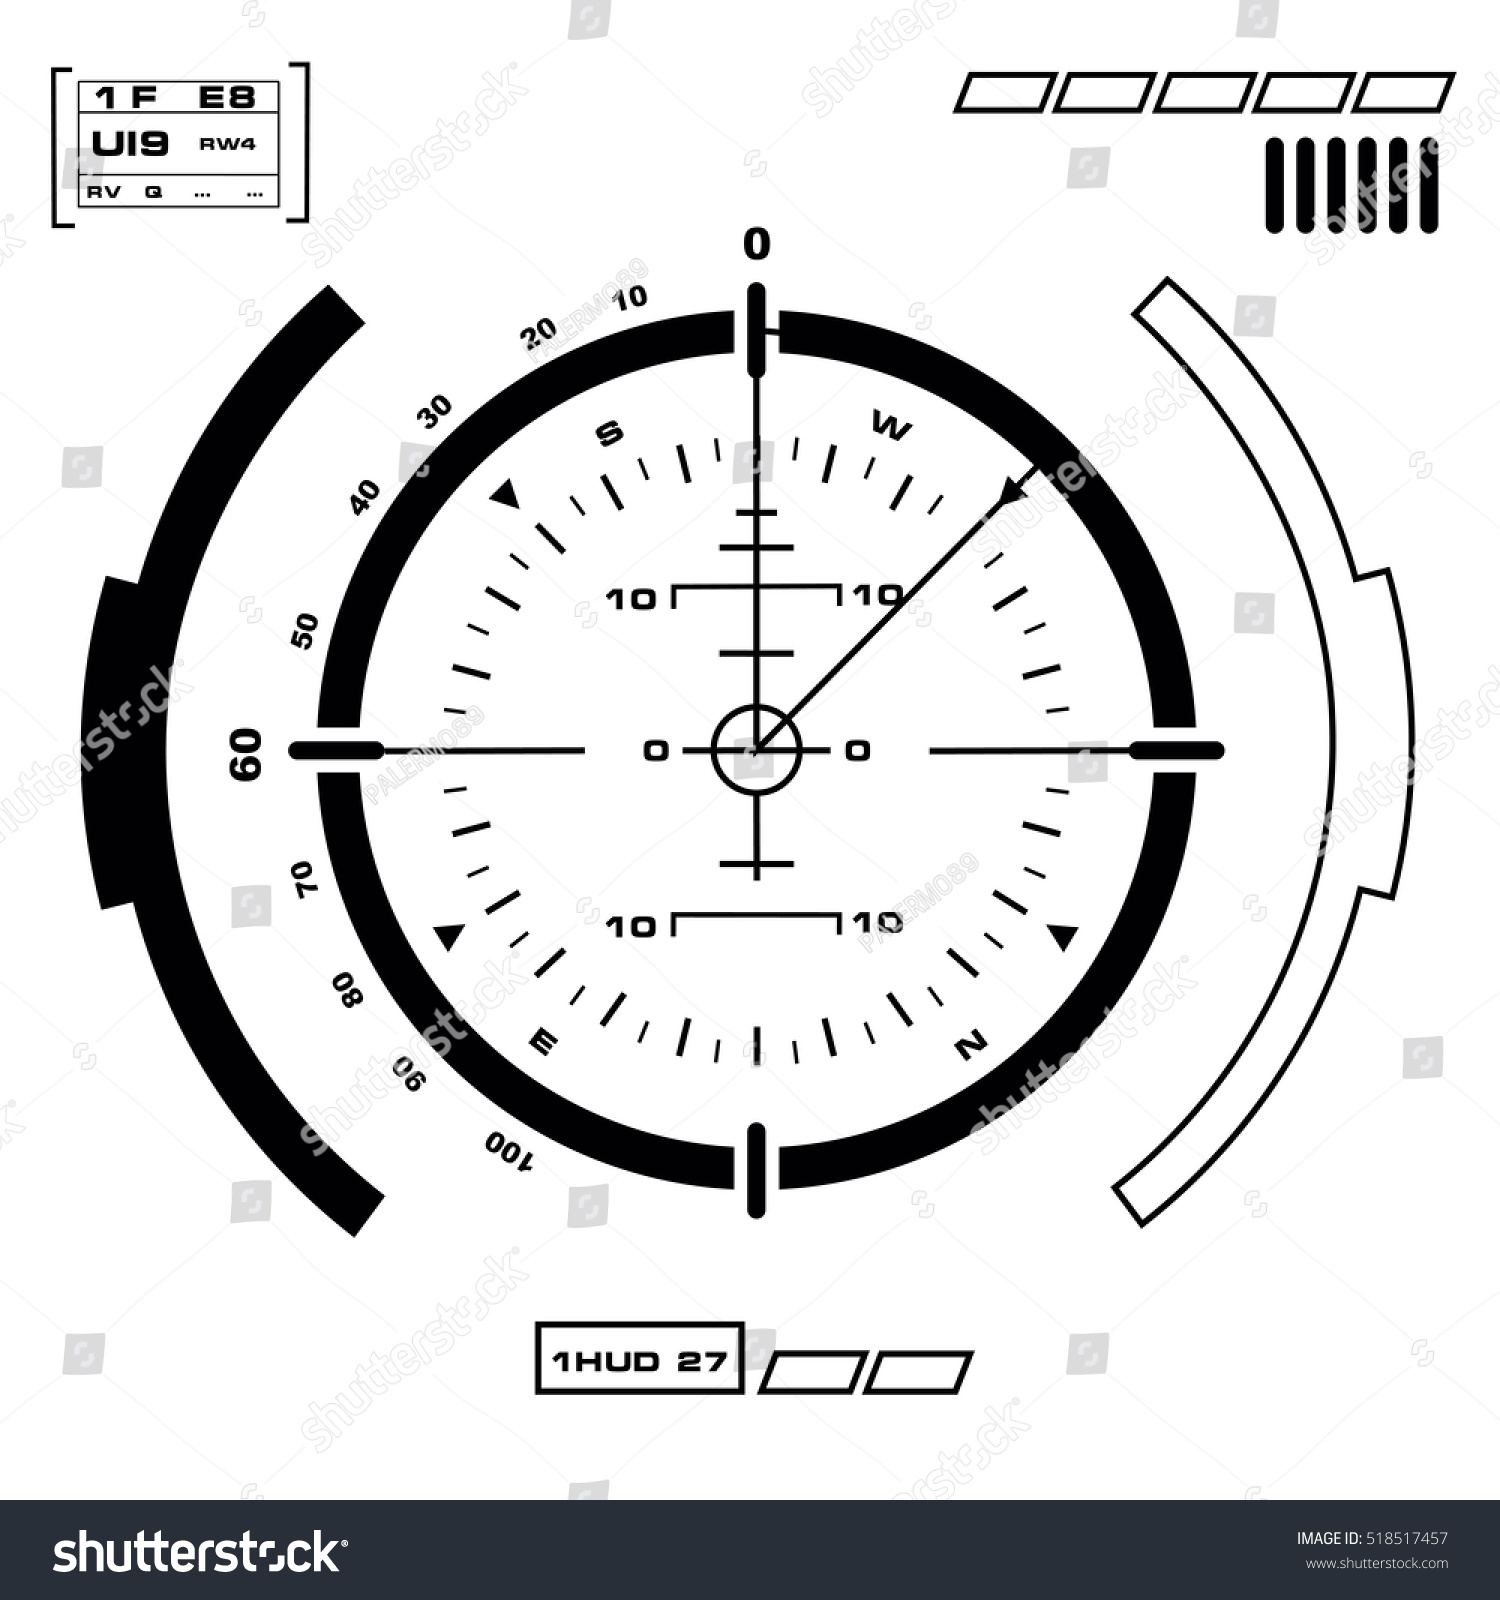 Futuristic Hud Virtual Touch User Interface Stock Vector